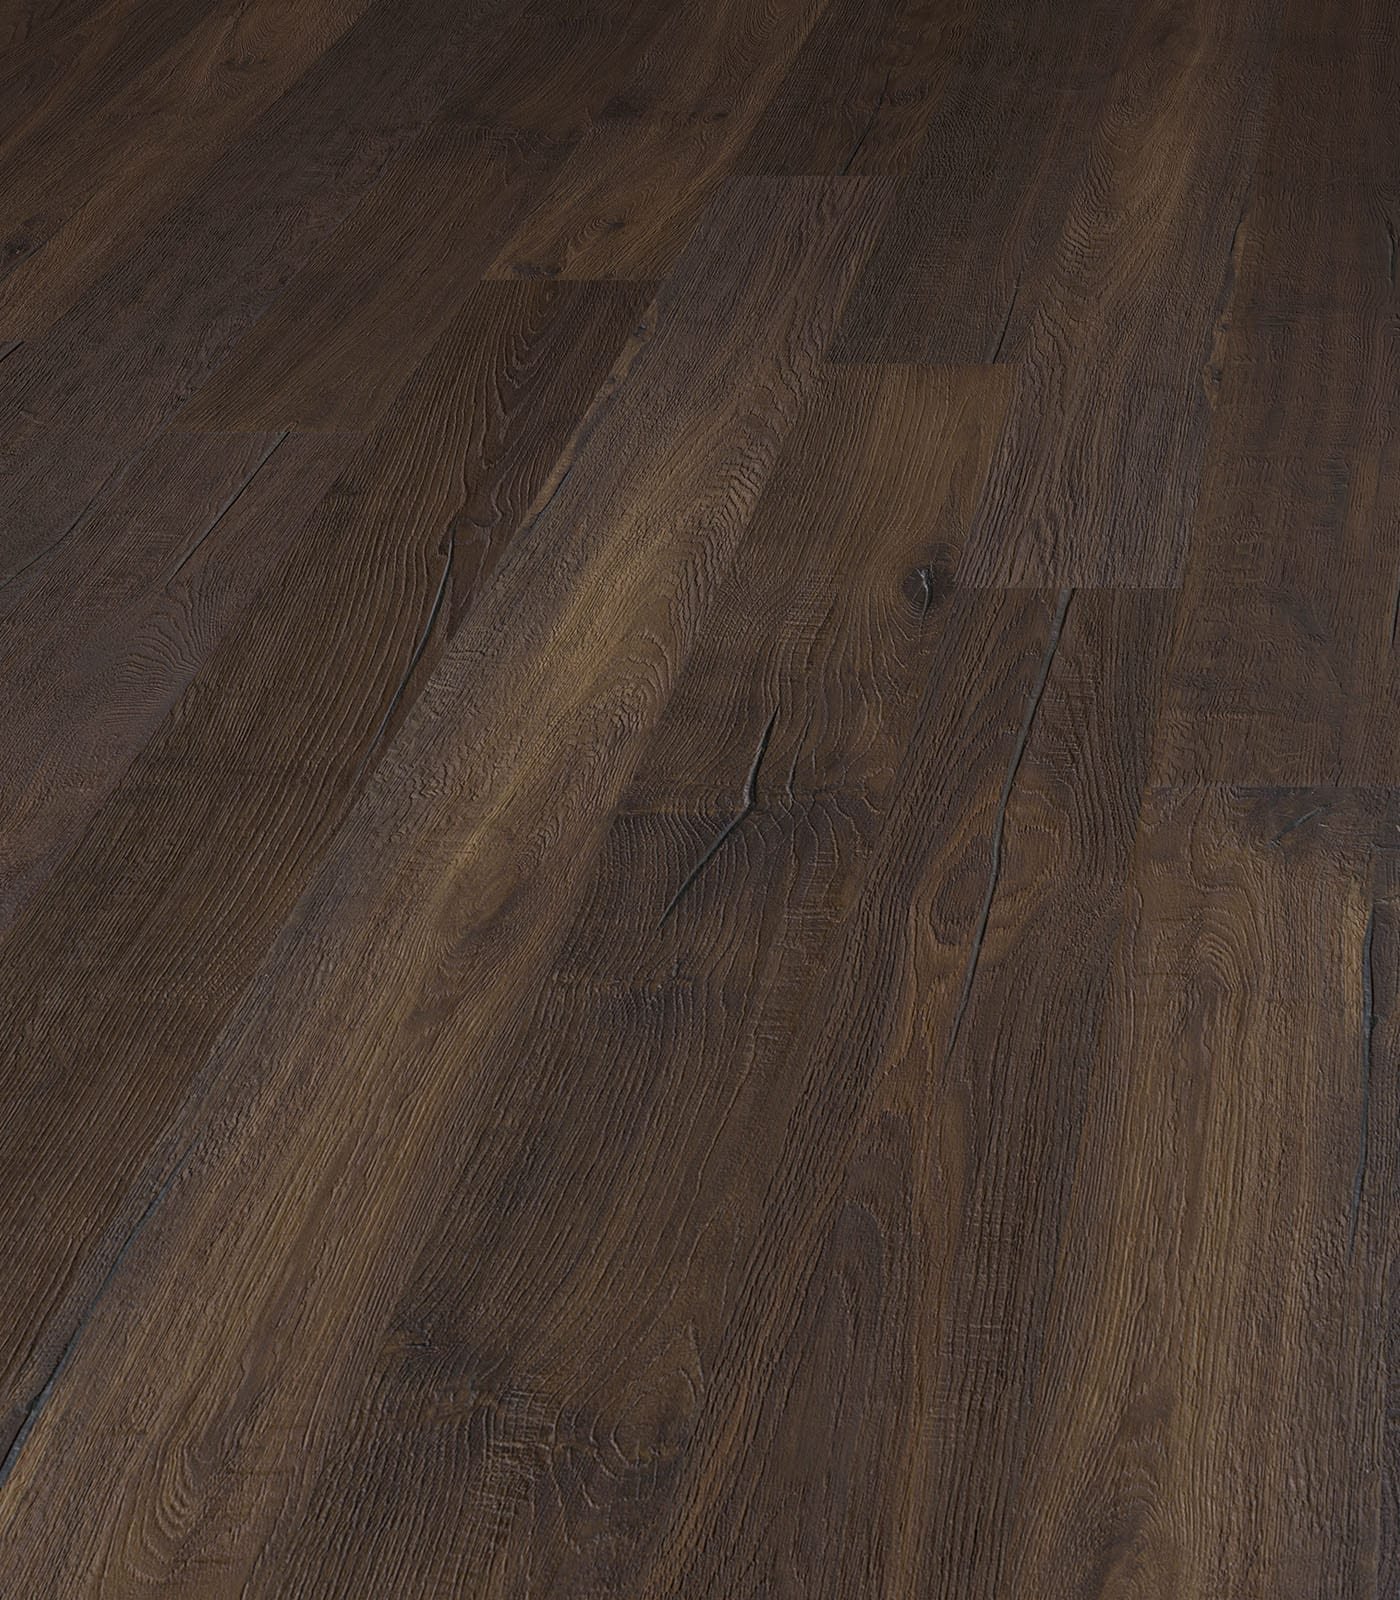 Pamirs-Antique collection-European oak flooring-angle